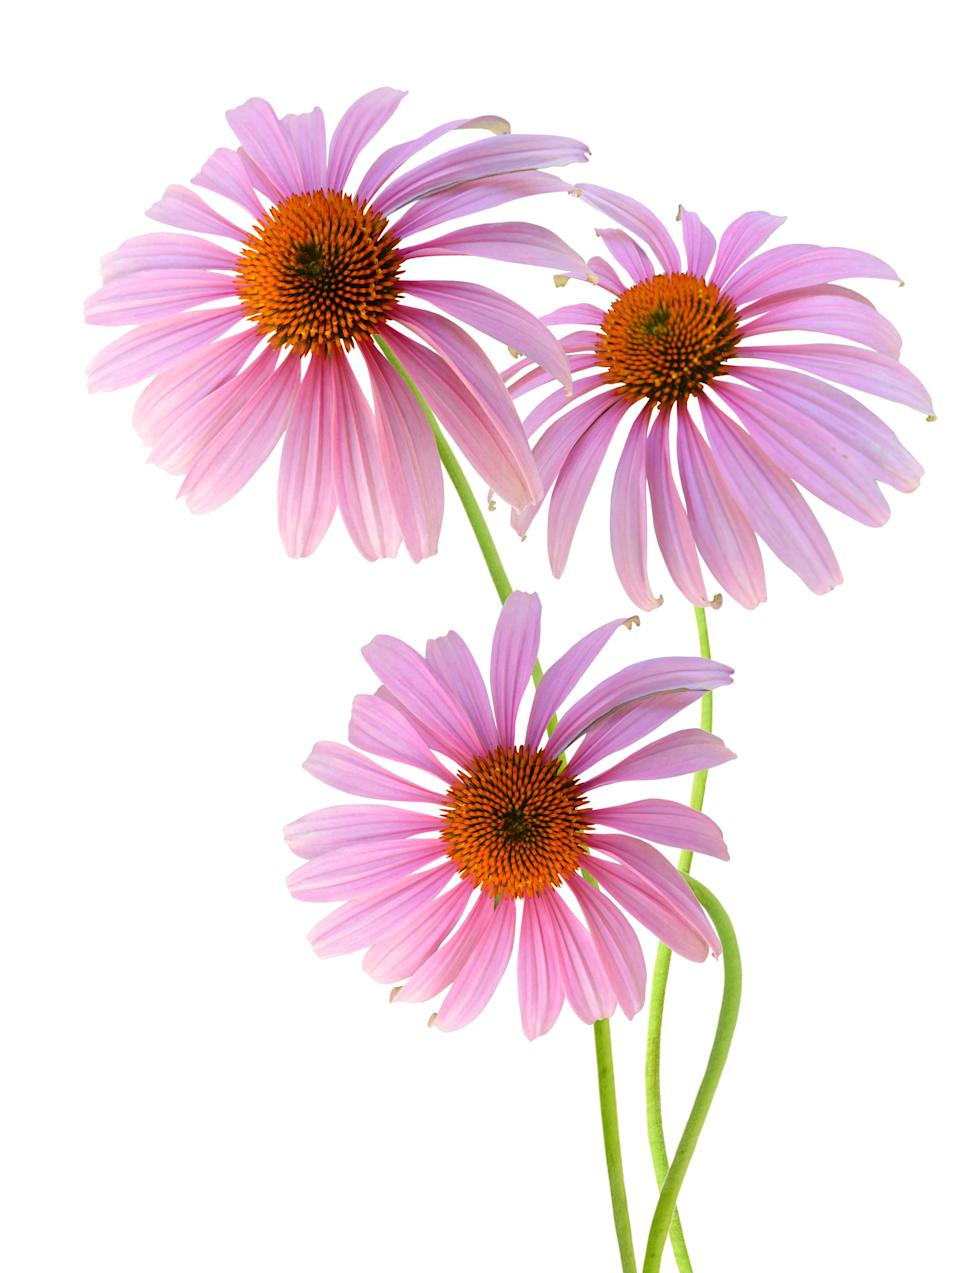 Research suggests the use of a properly formulated Echinacea means fewer colds, reduced duration of cold symptoms, and less reliance on synthetic pain relievers.